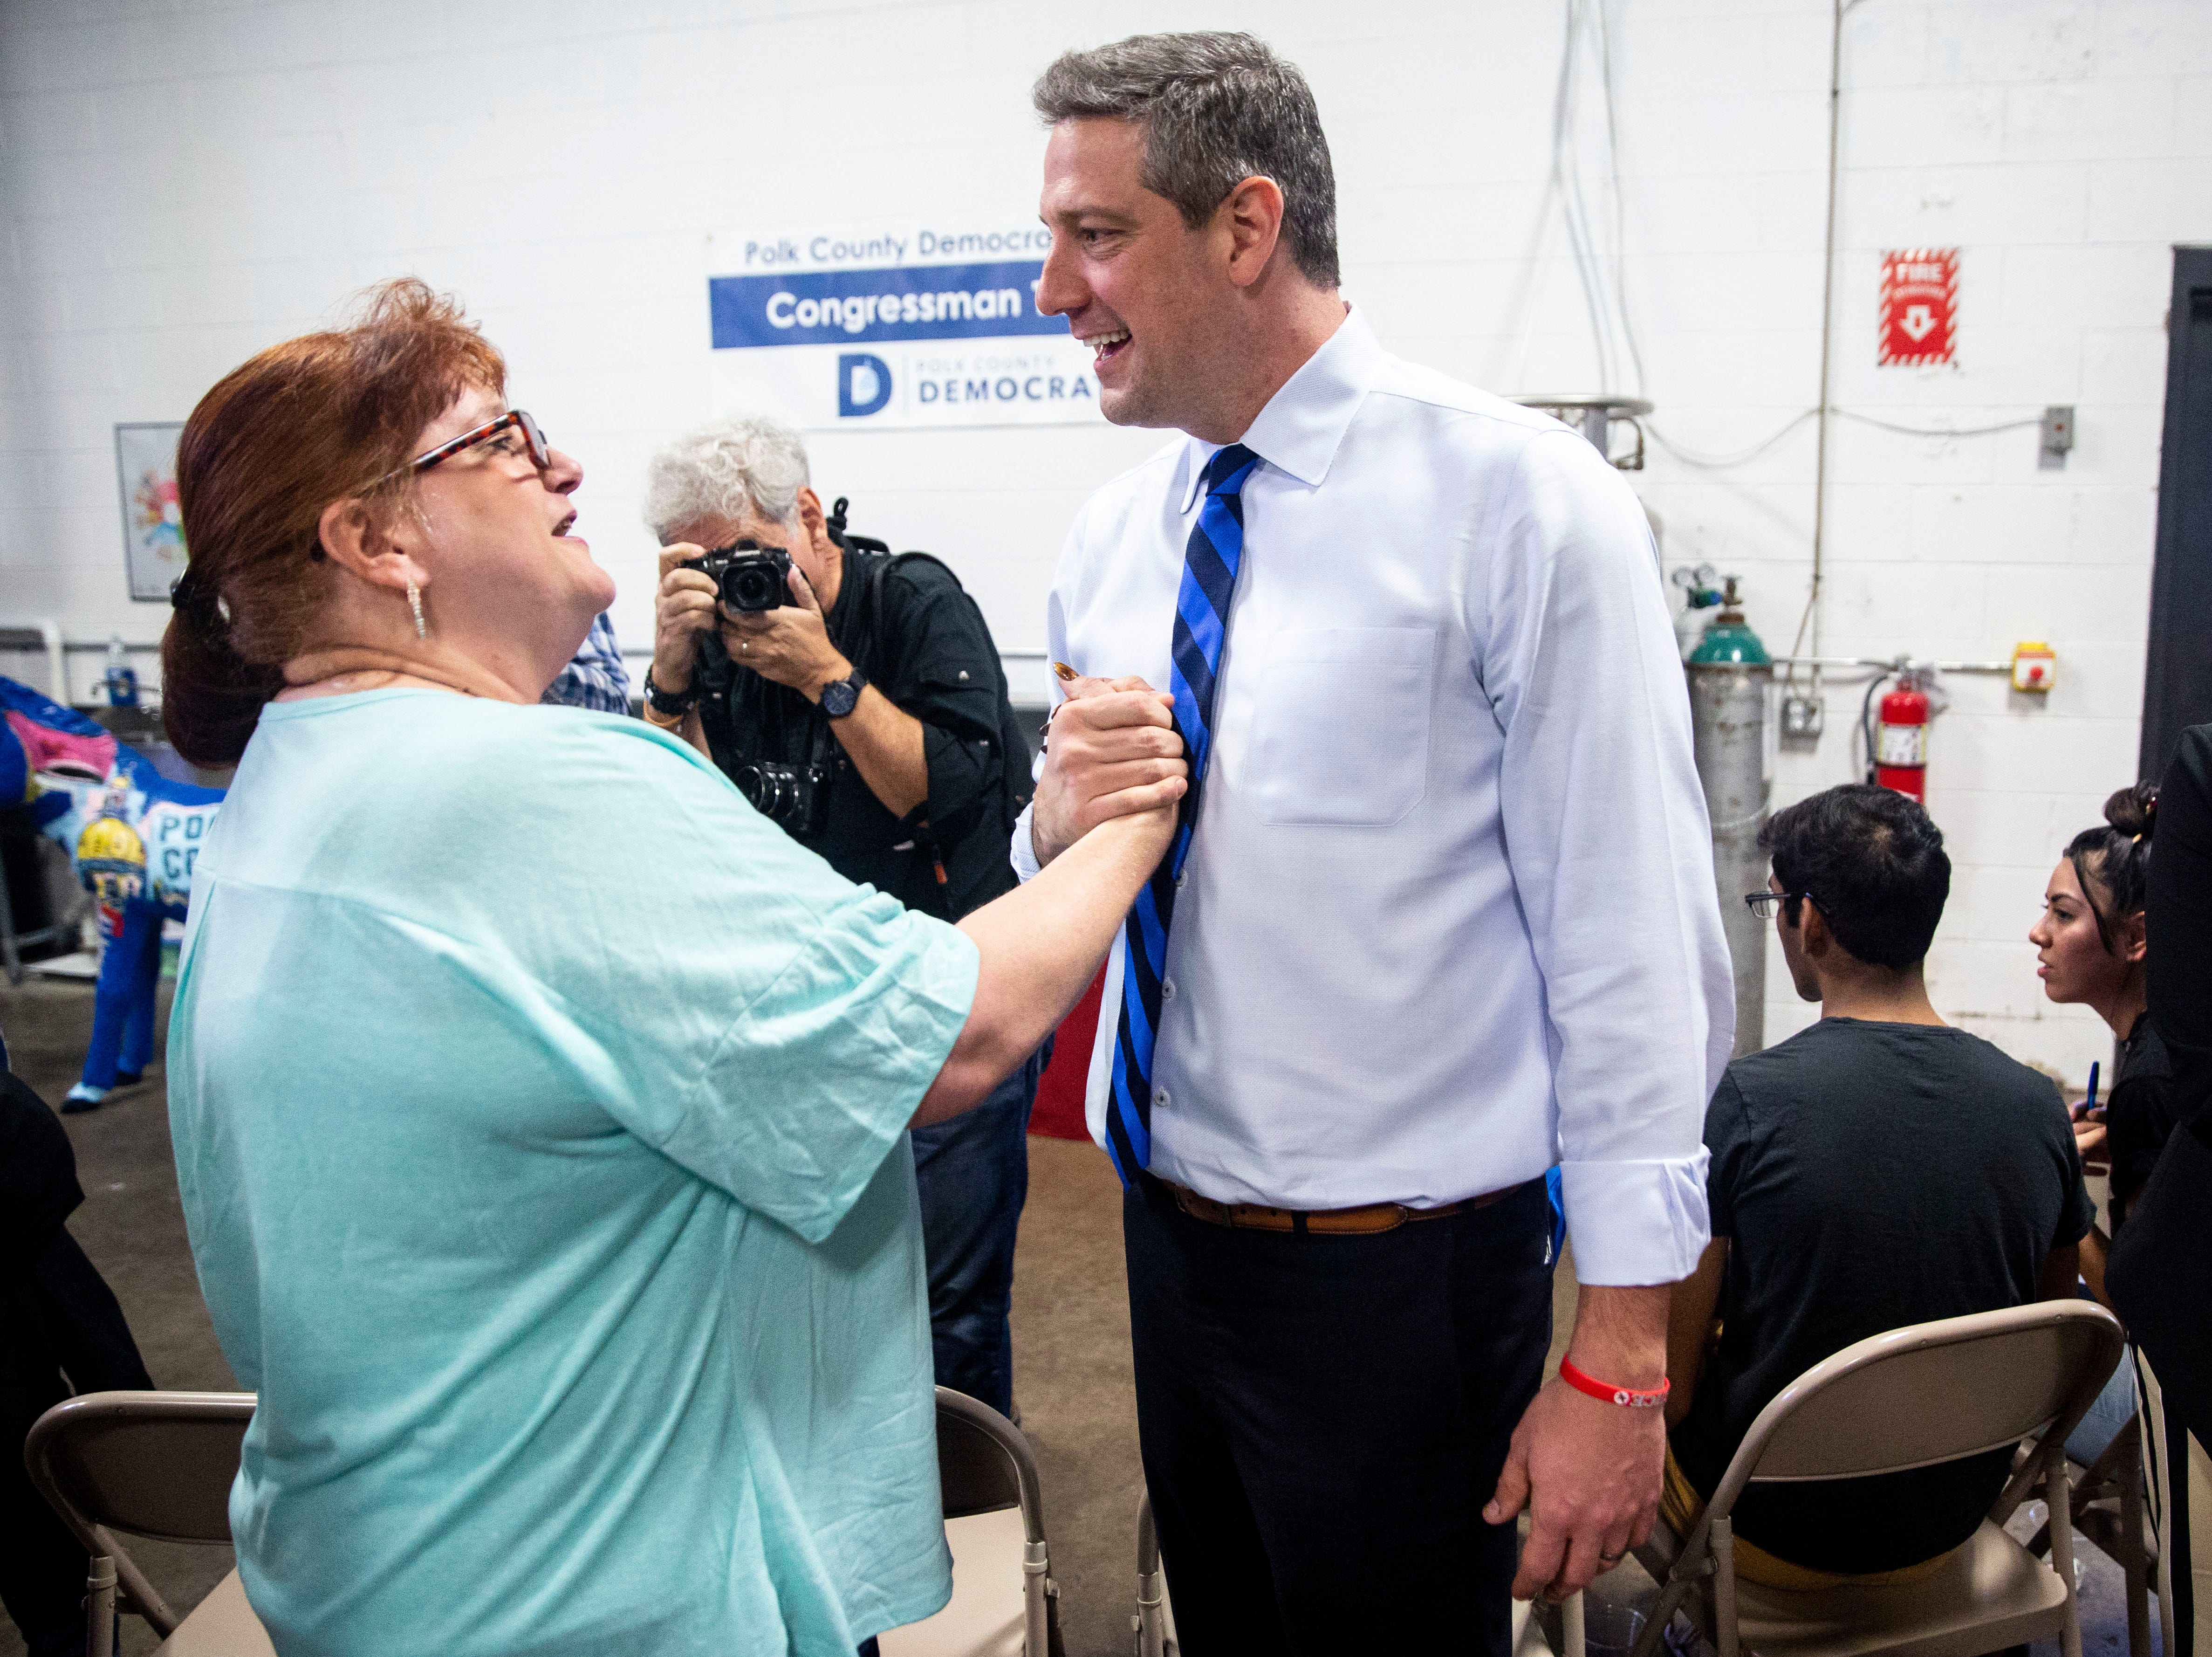 U.S. Rep. Tim Ryan, D-Ohio, shakes hands with Tamyra Harrison, of Mitchellville, at a meet and greet event organized by the Polk County Democrats on Sunday, April 7, 2019, at Fox Brewing in West Des Moines. This is Ryan's first visit to Iowa after announcing he's running for president.